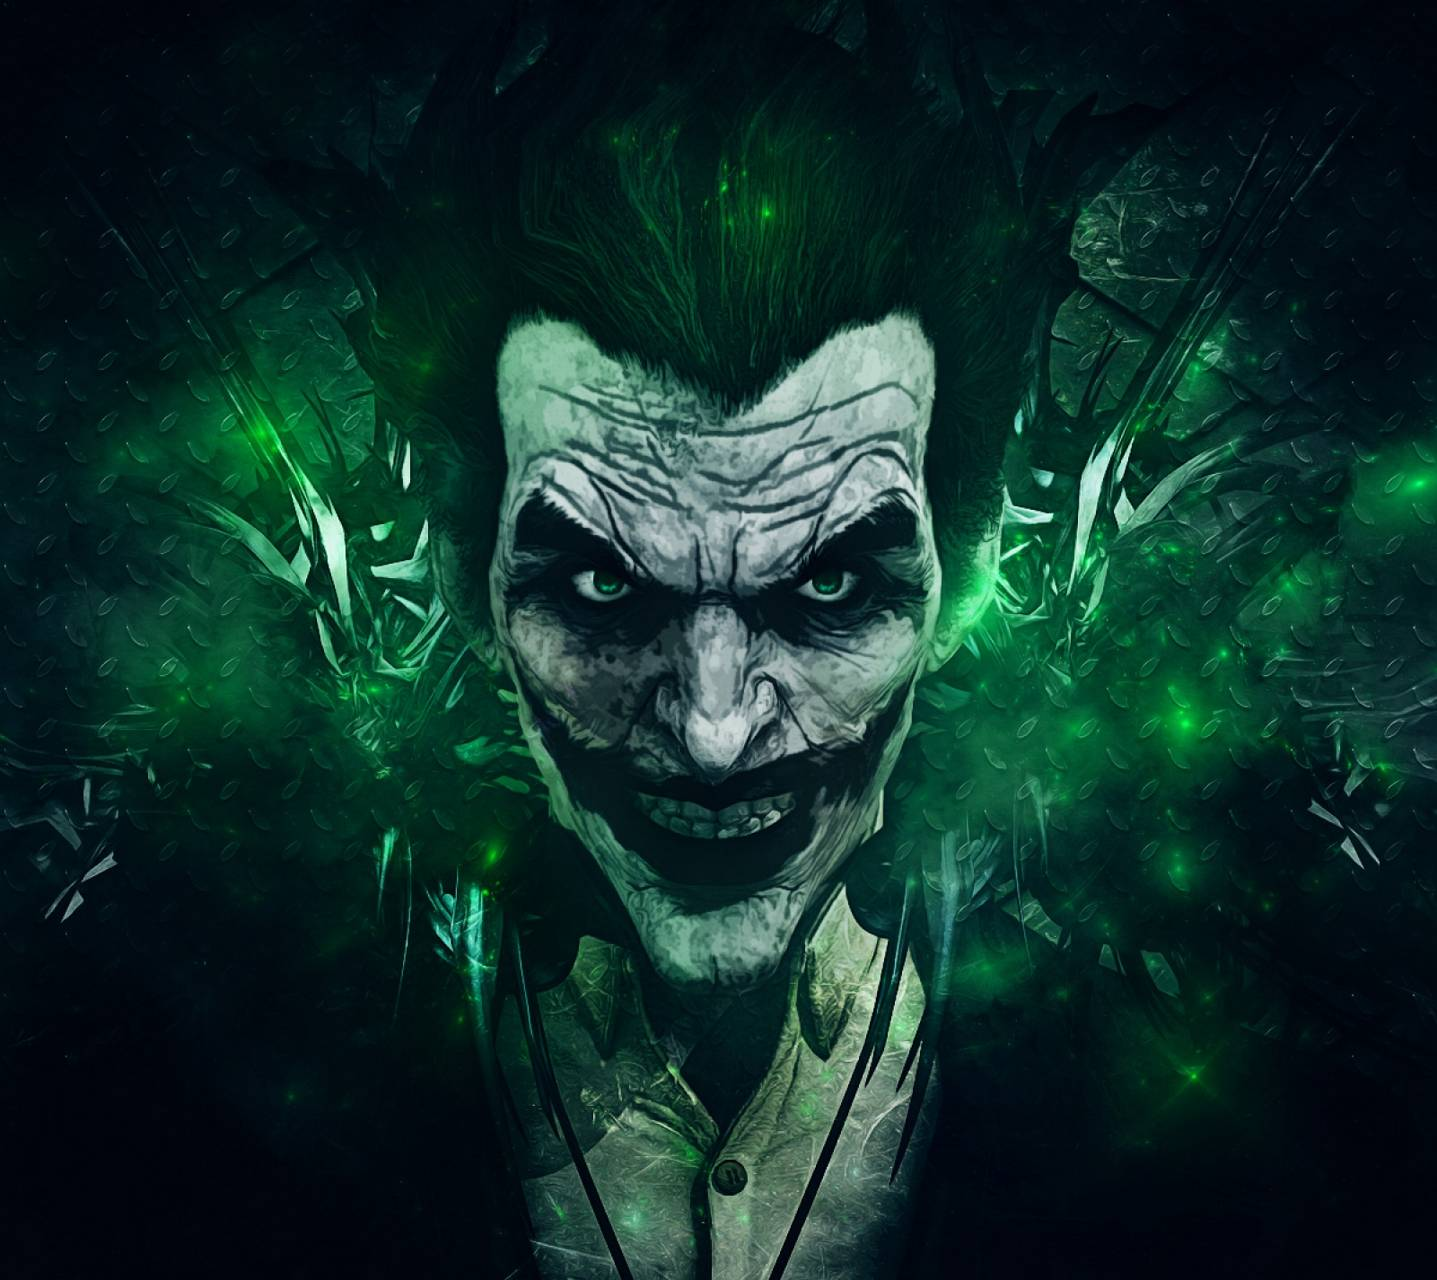 Download free joker wallpapers for your mobile phone